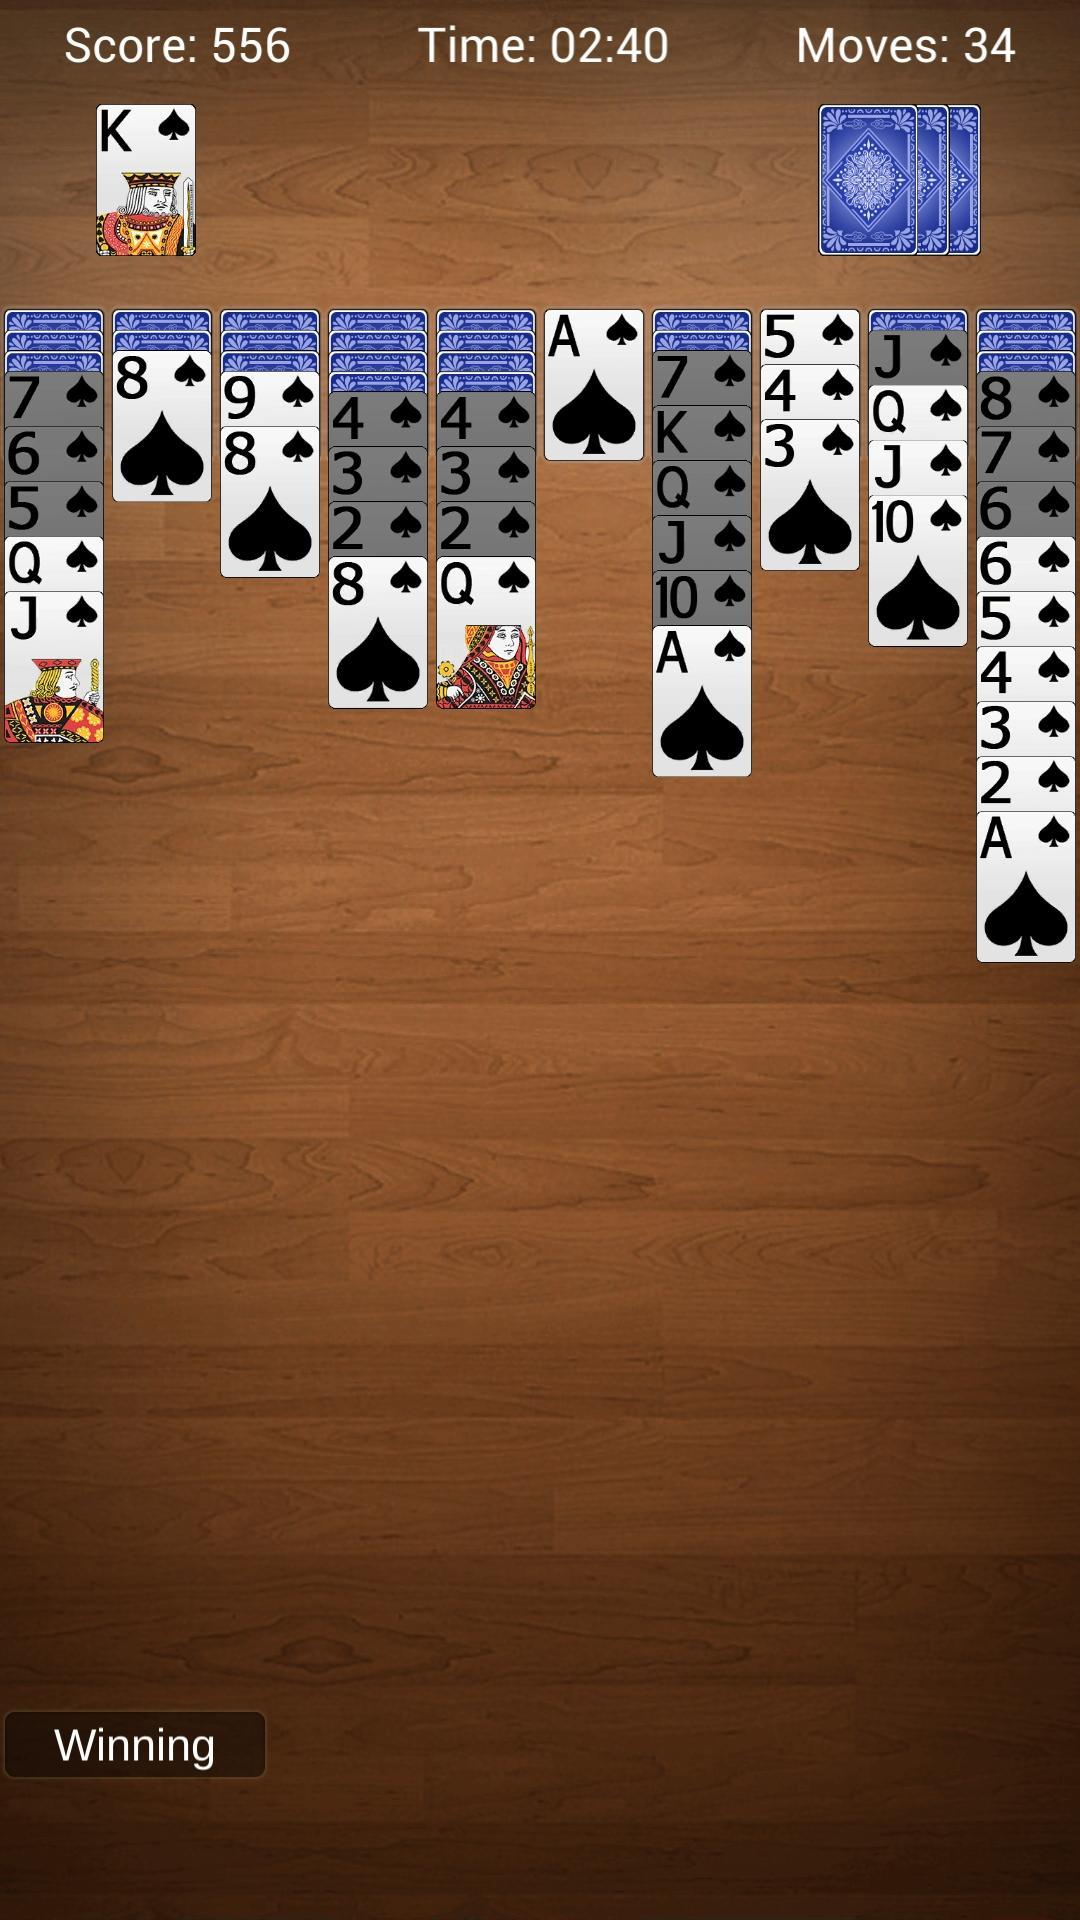 Spider Solitaire - Best Classic Card Games 1.8.0.20210225 Screenshot 5